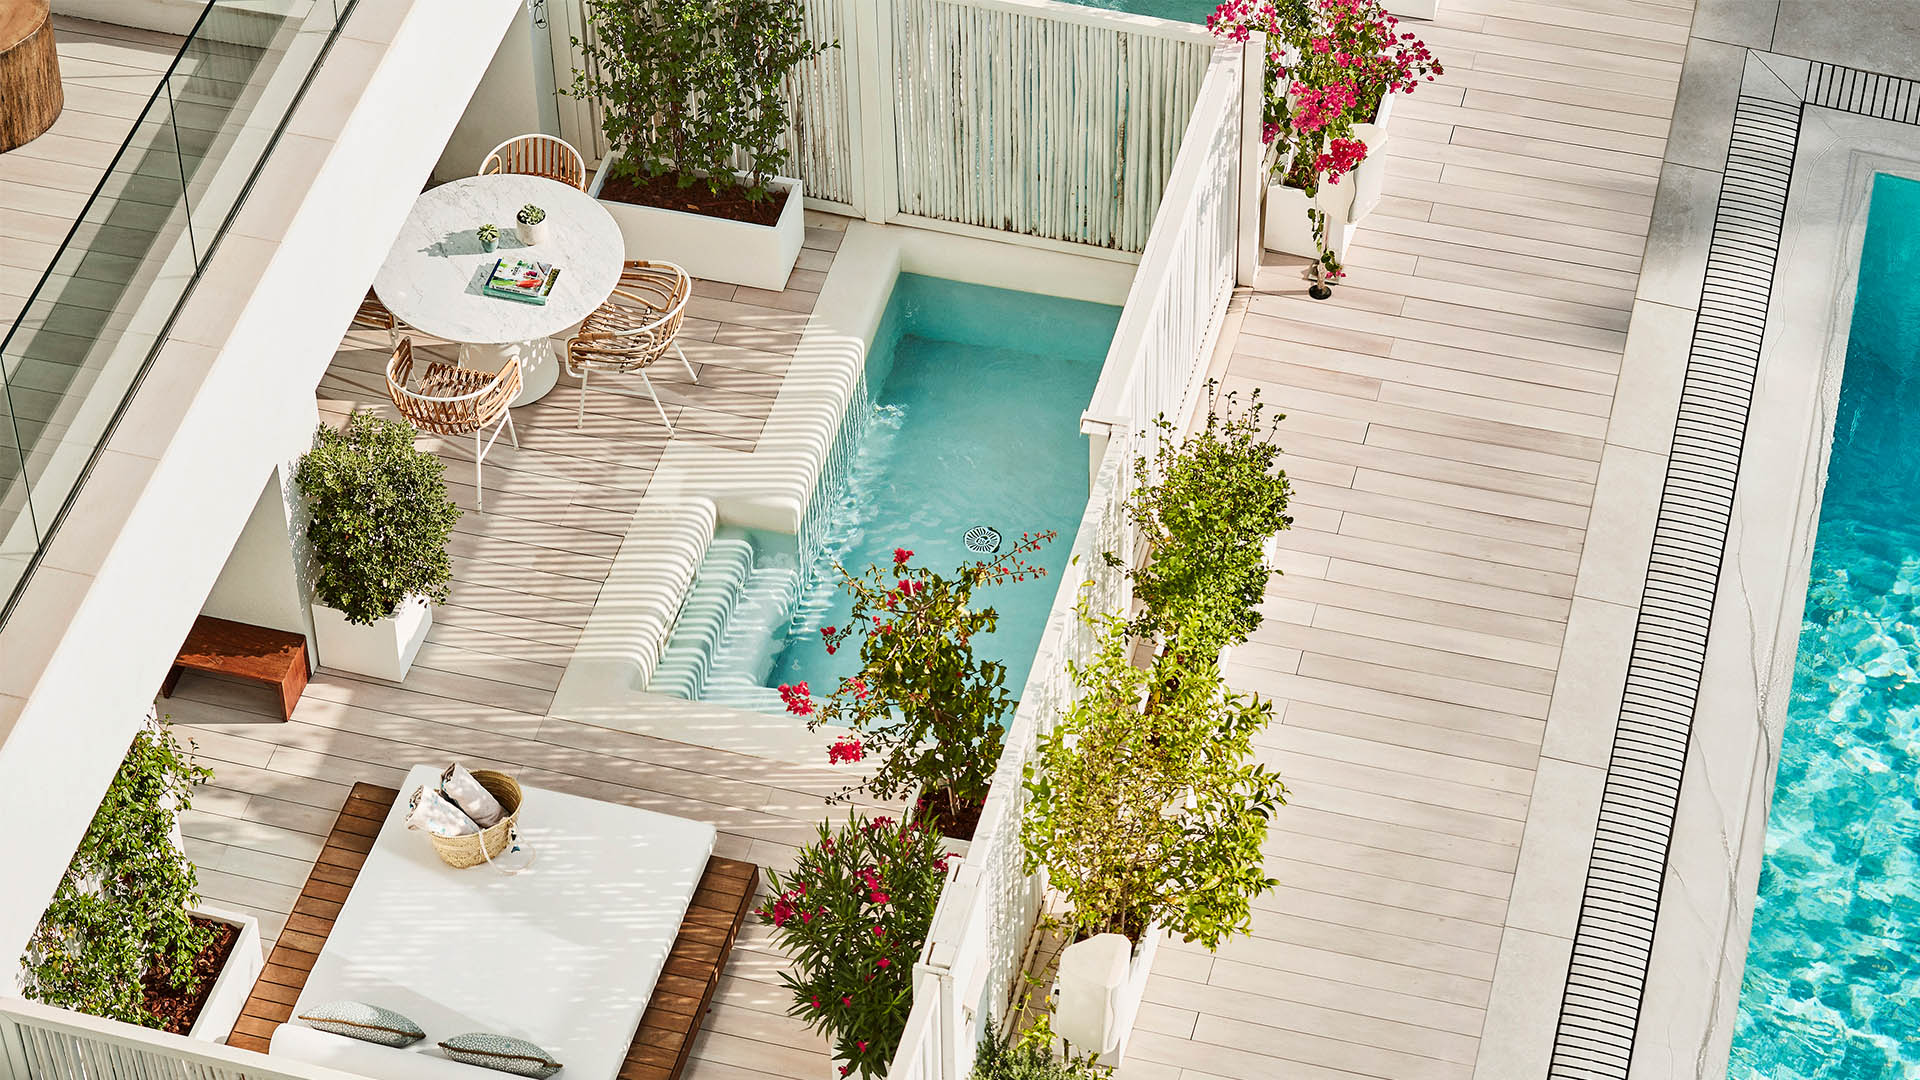 Splash out: 12 boutique hotel rooms with private pools